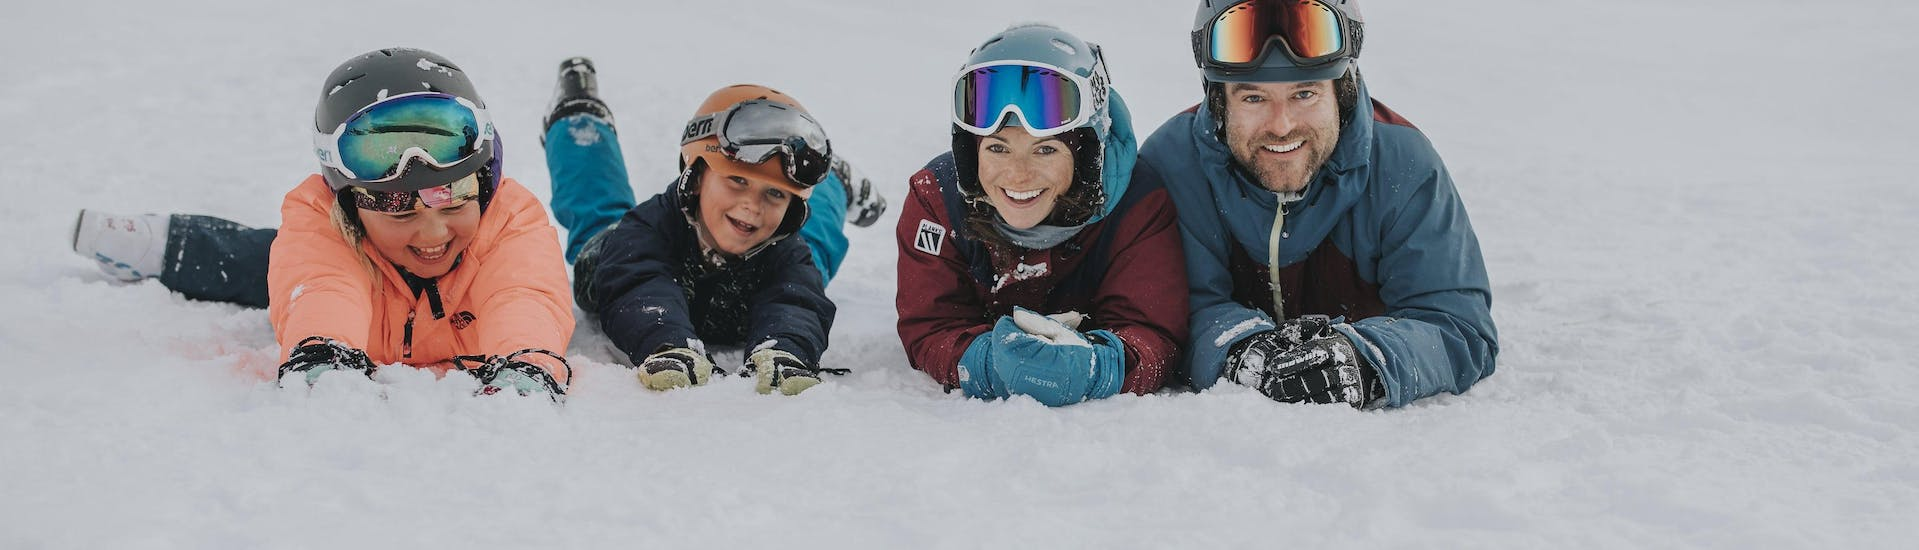 Kids Ski Lessons (5-17 years) - All Levels - With Transfer